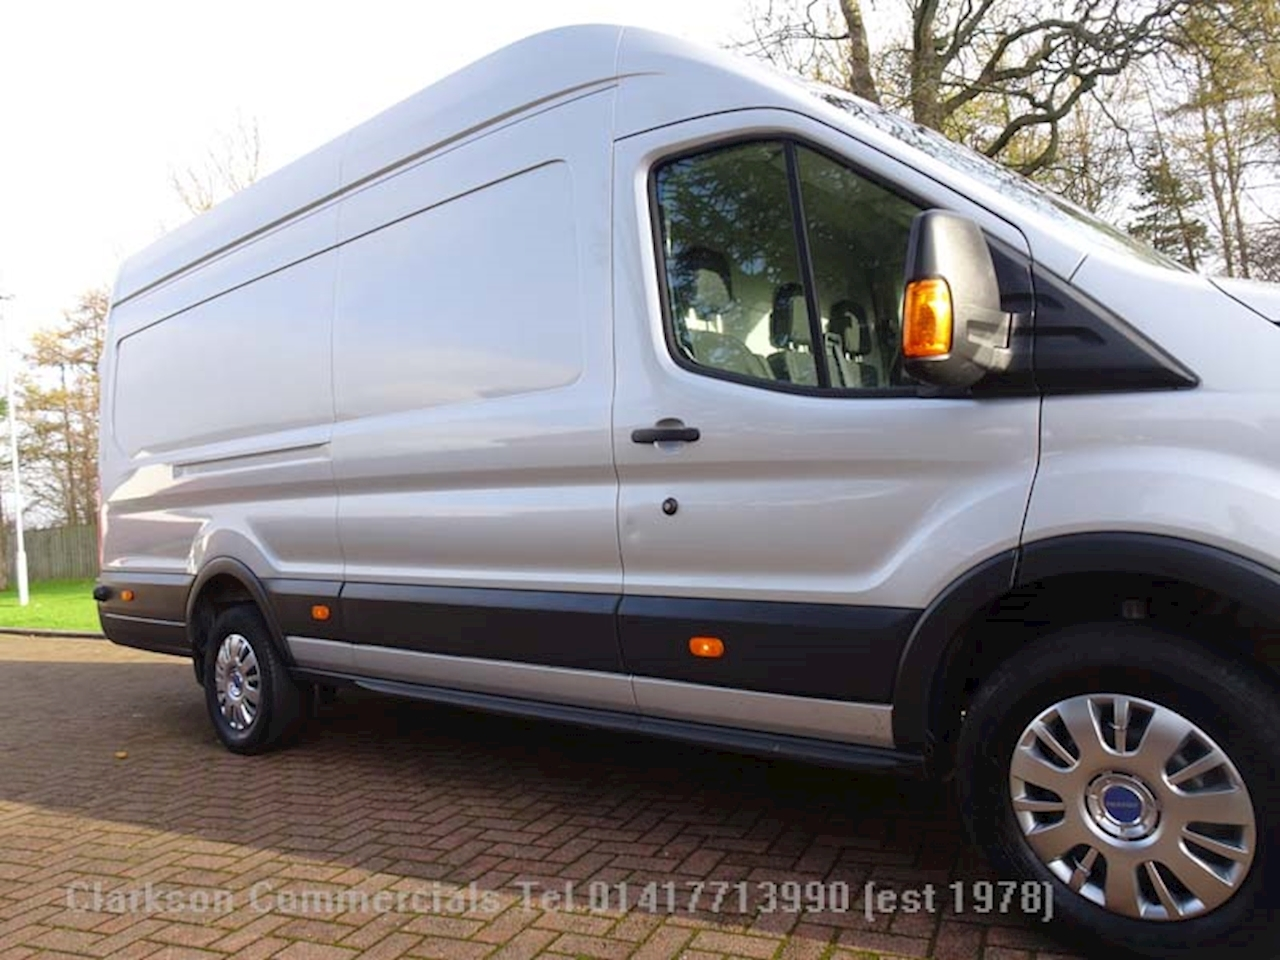 Ford Transit 2.0 350 L4H3 EcoBlue Panel Van Diesel (170 ps) 2.0 5dr Panel Van Manual Diesel